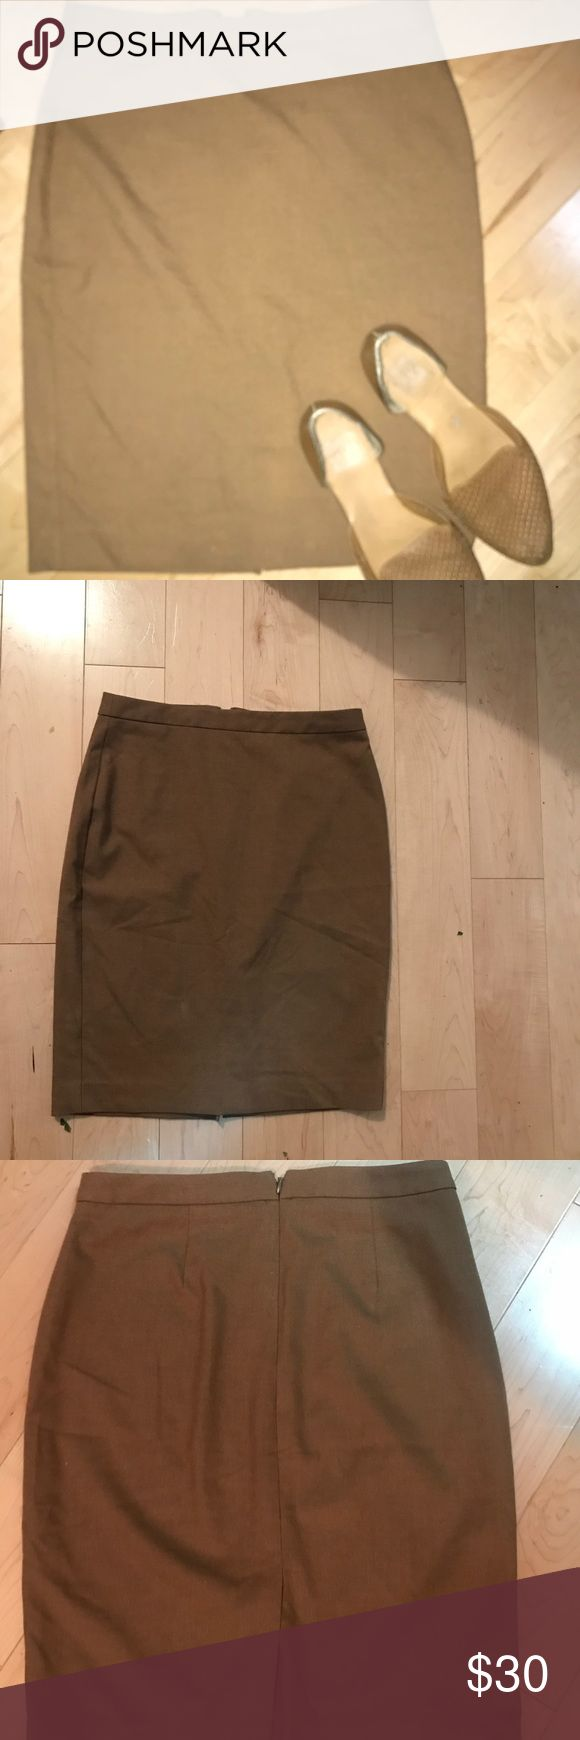 BNWOT Banana Republic Tan Pencil Skirt Size 0 BNWOT Banana Republic Tan Pencil Skirt Size 0  Received this as a gift and I Took the tags off but ended up being to big for me Banana Republic Skirts Pencil